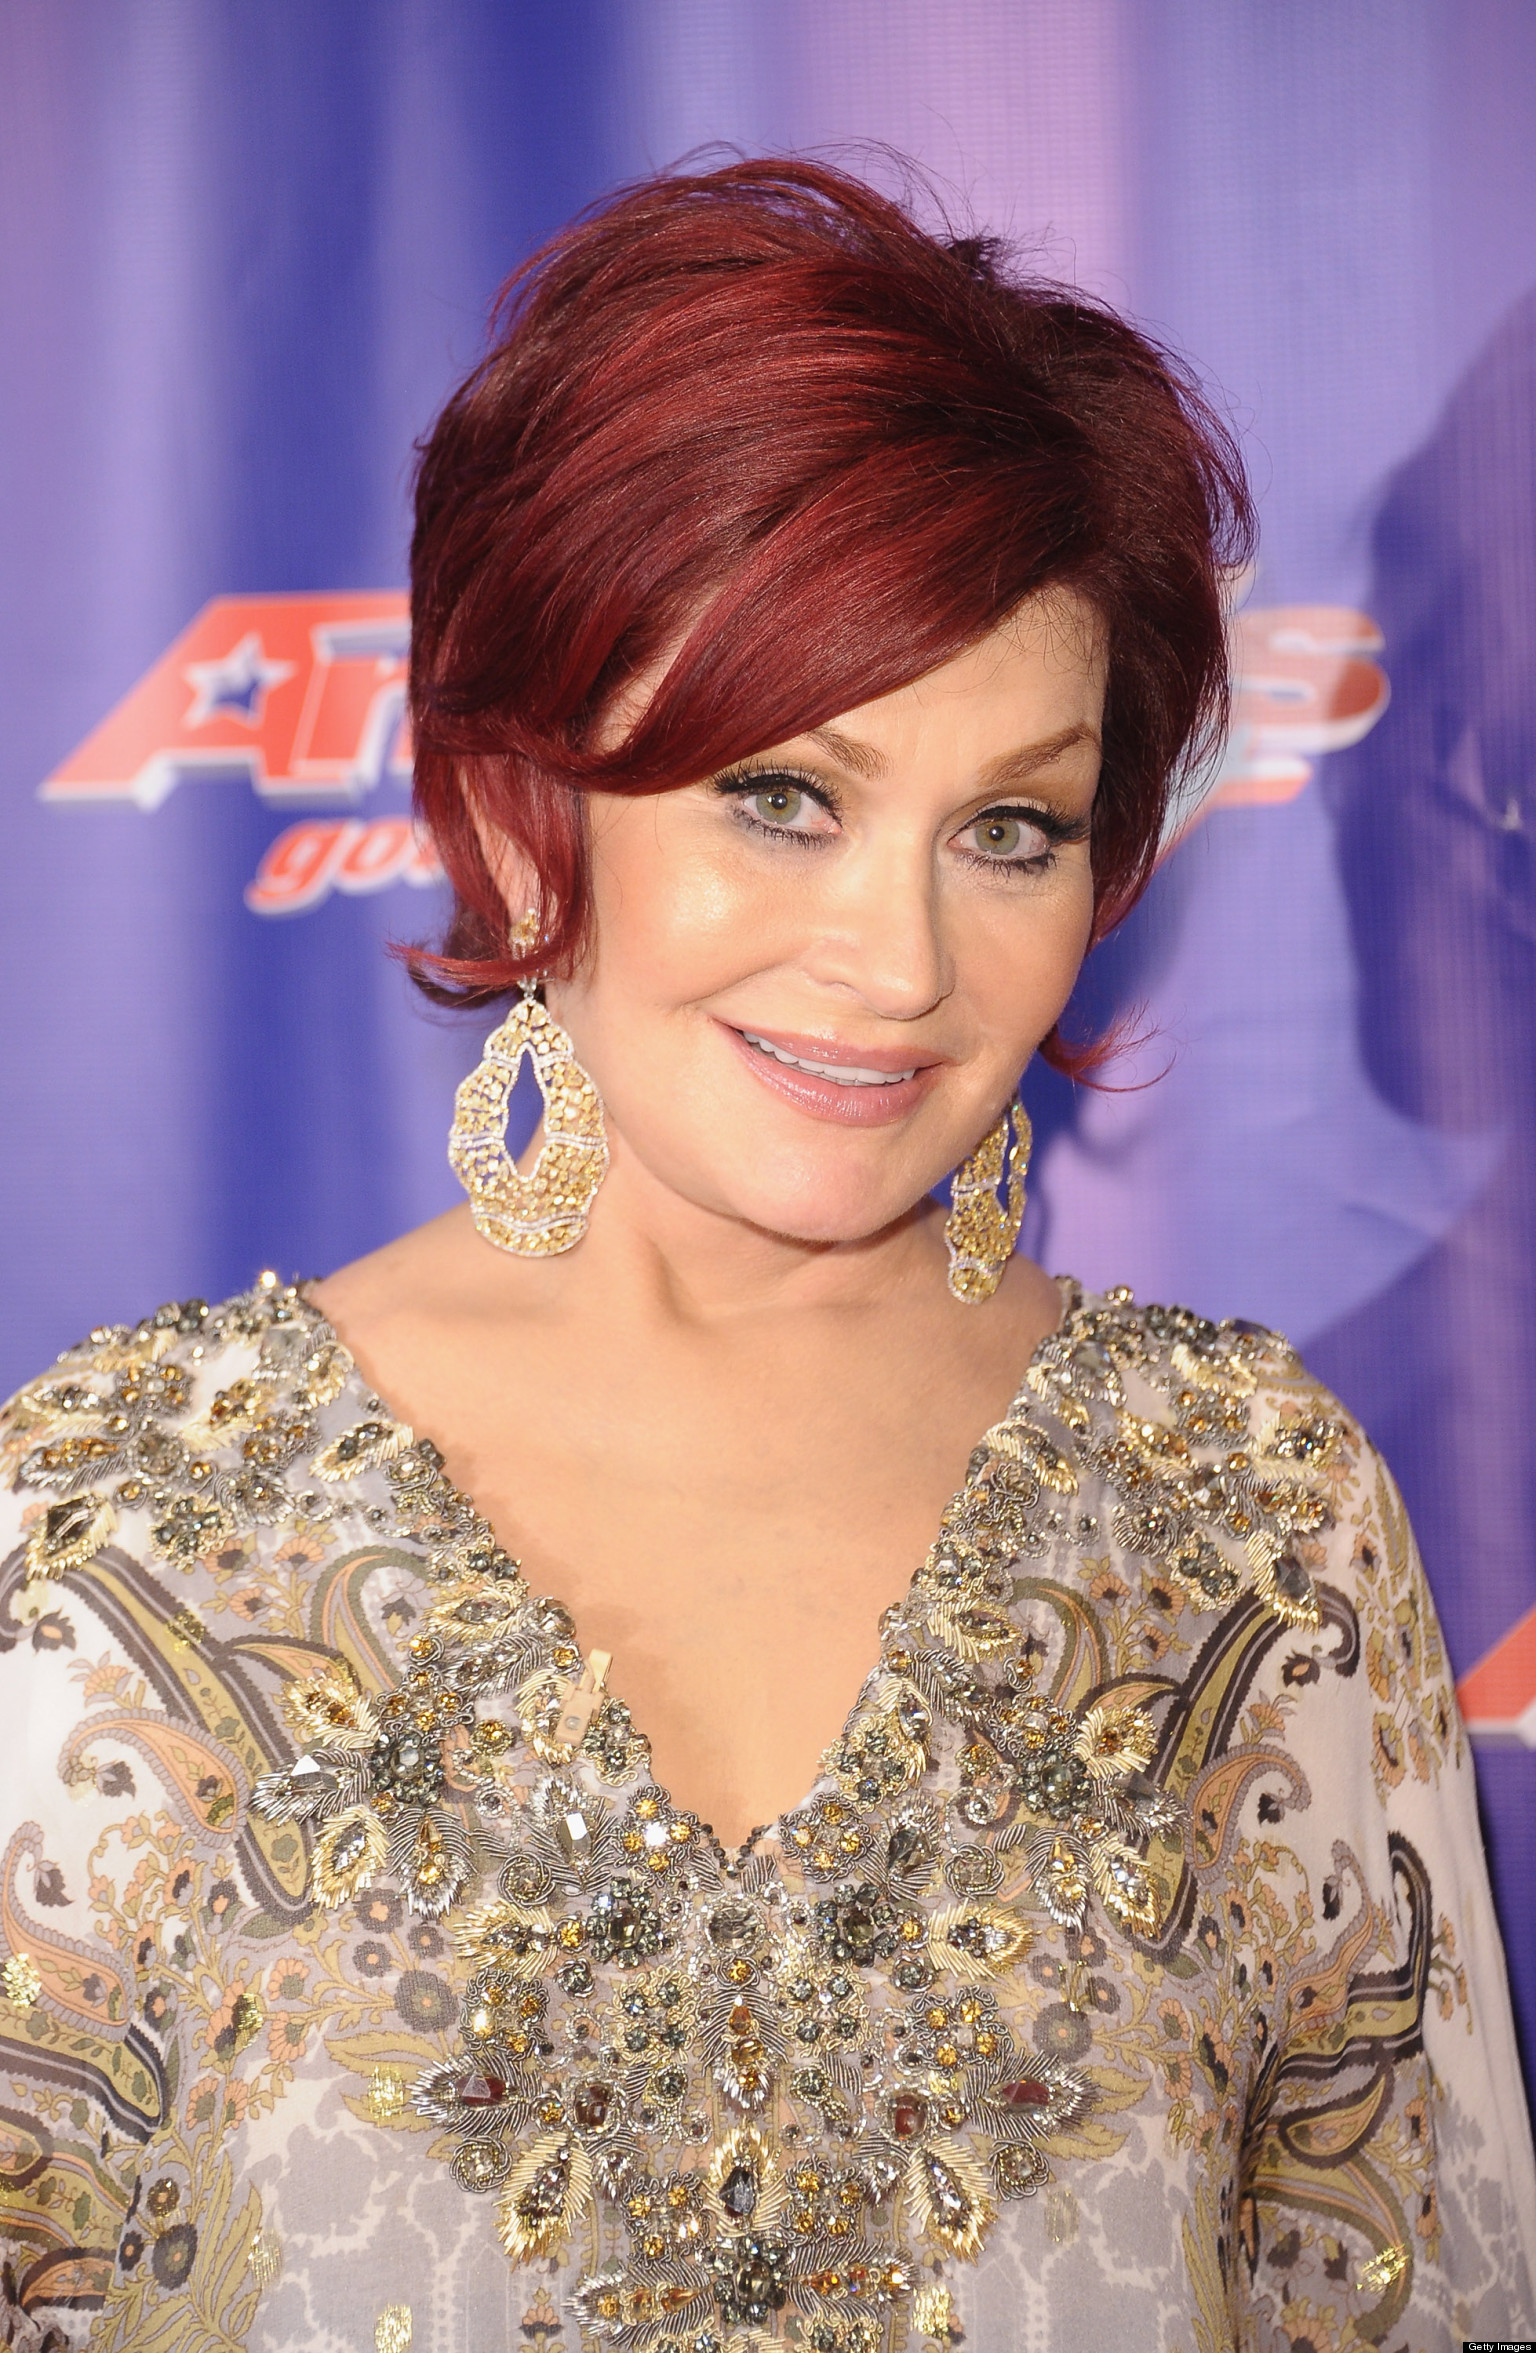 Sharon Osbourne Talks About Her Decision To Have A Double ...